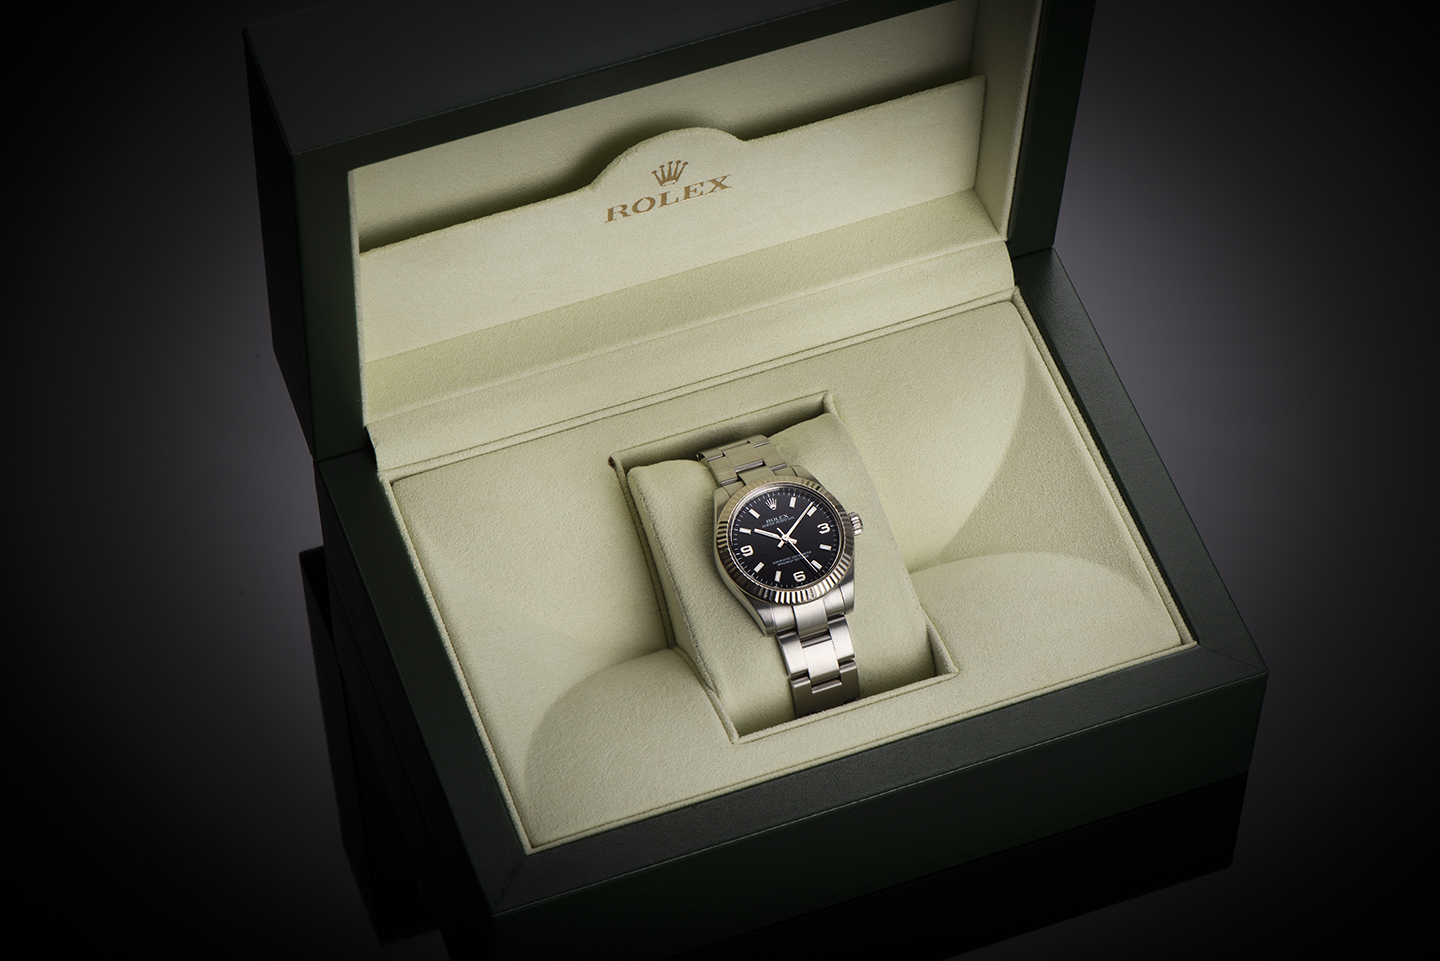 Montre Rolex Oyster Perpetual 31 mm-1